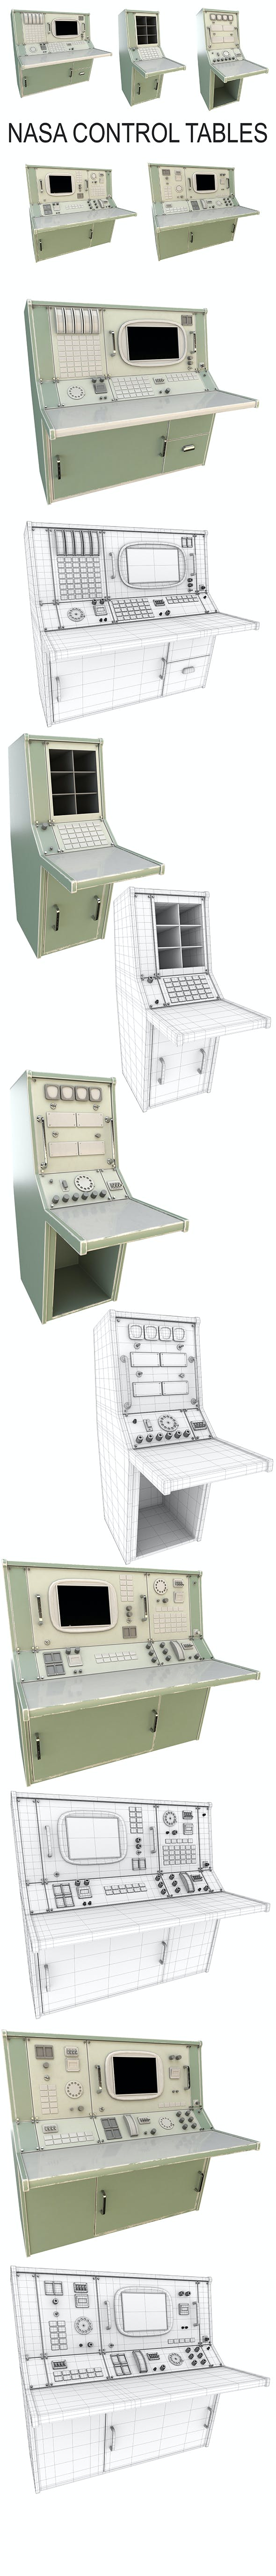 Nasa Control Tables (PBR) - 3DOcean Item for Sale